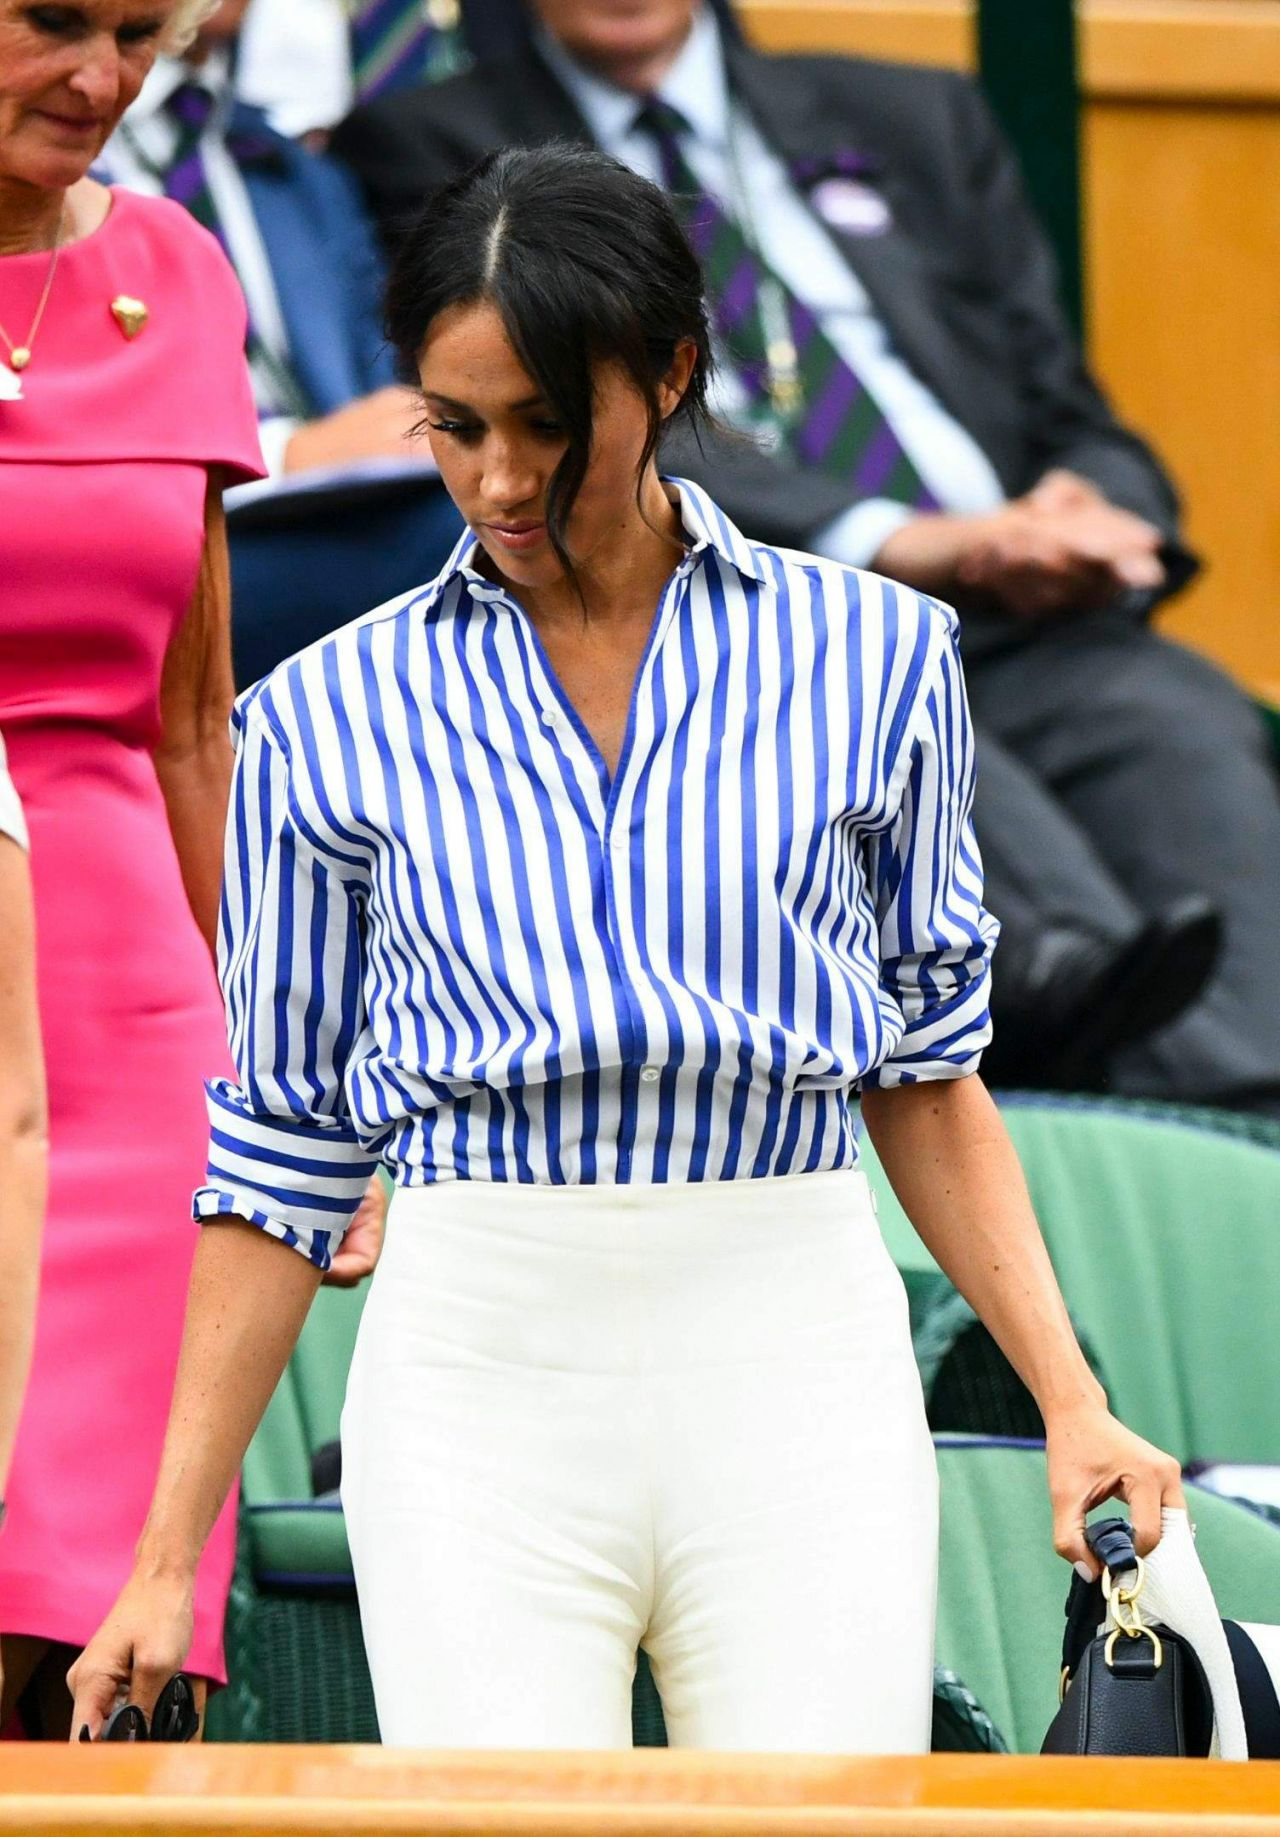 Kate Middleton And Meghan Markle At Wimbledon In London 07